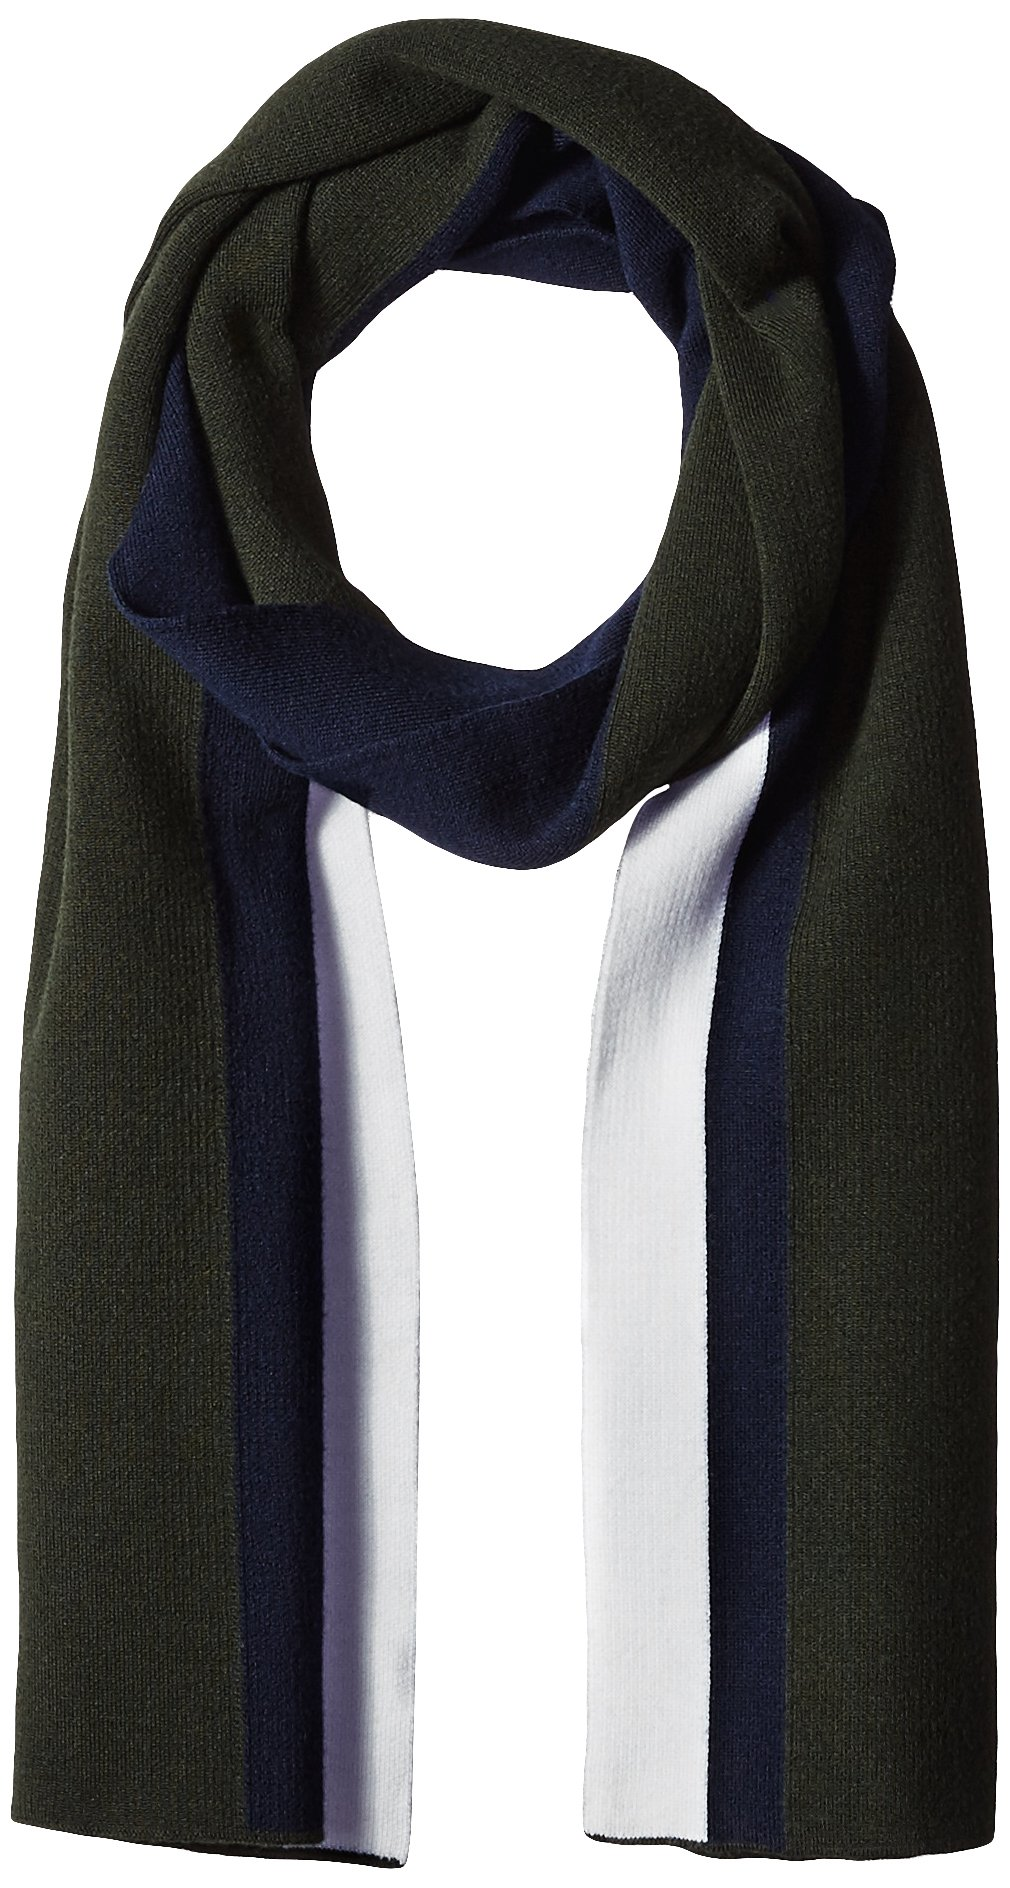 Lacoste Men's Mif Double Face Wool Scarf, Sherwood/Navy Blue/Flour, One Size